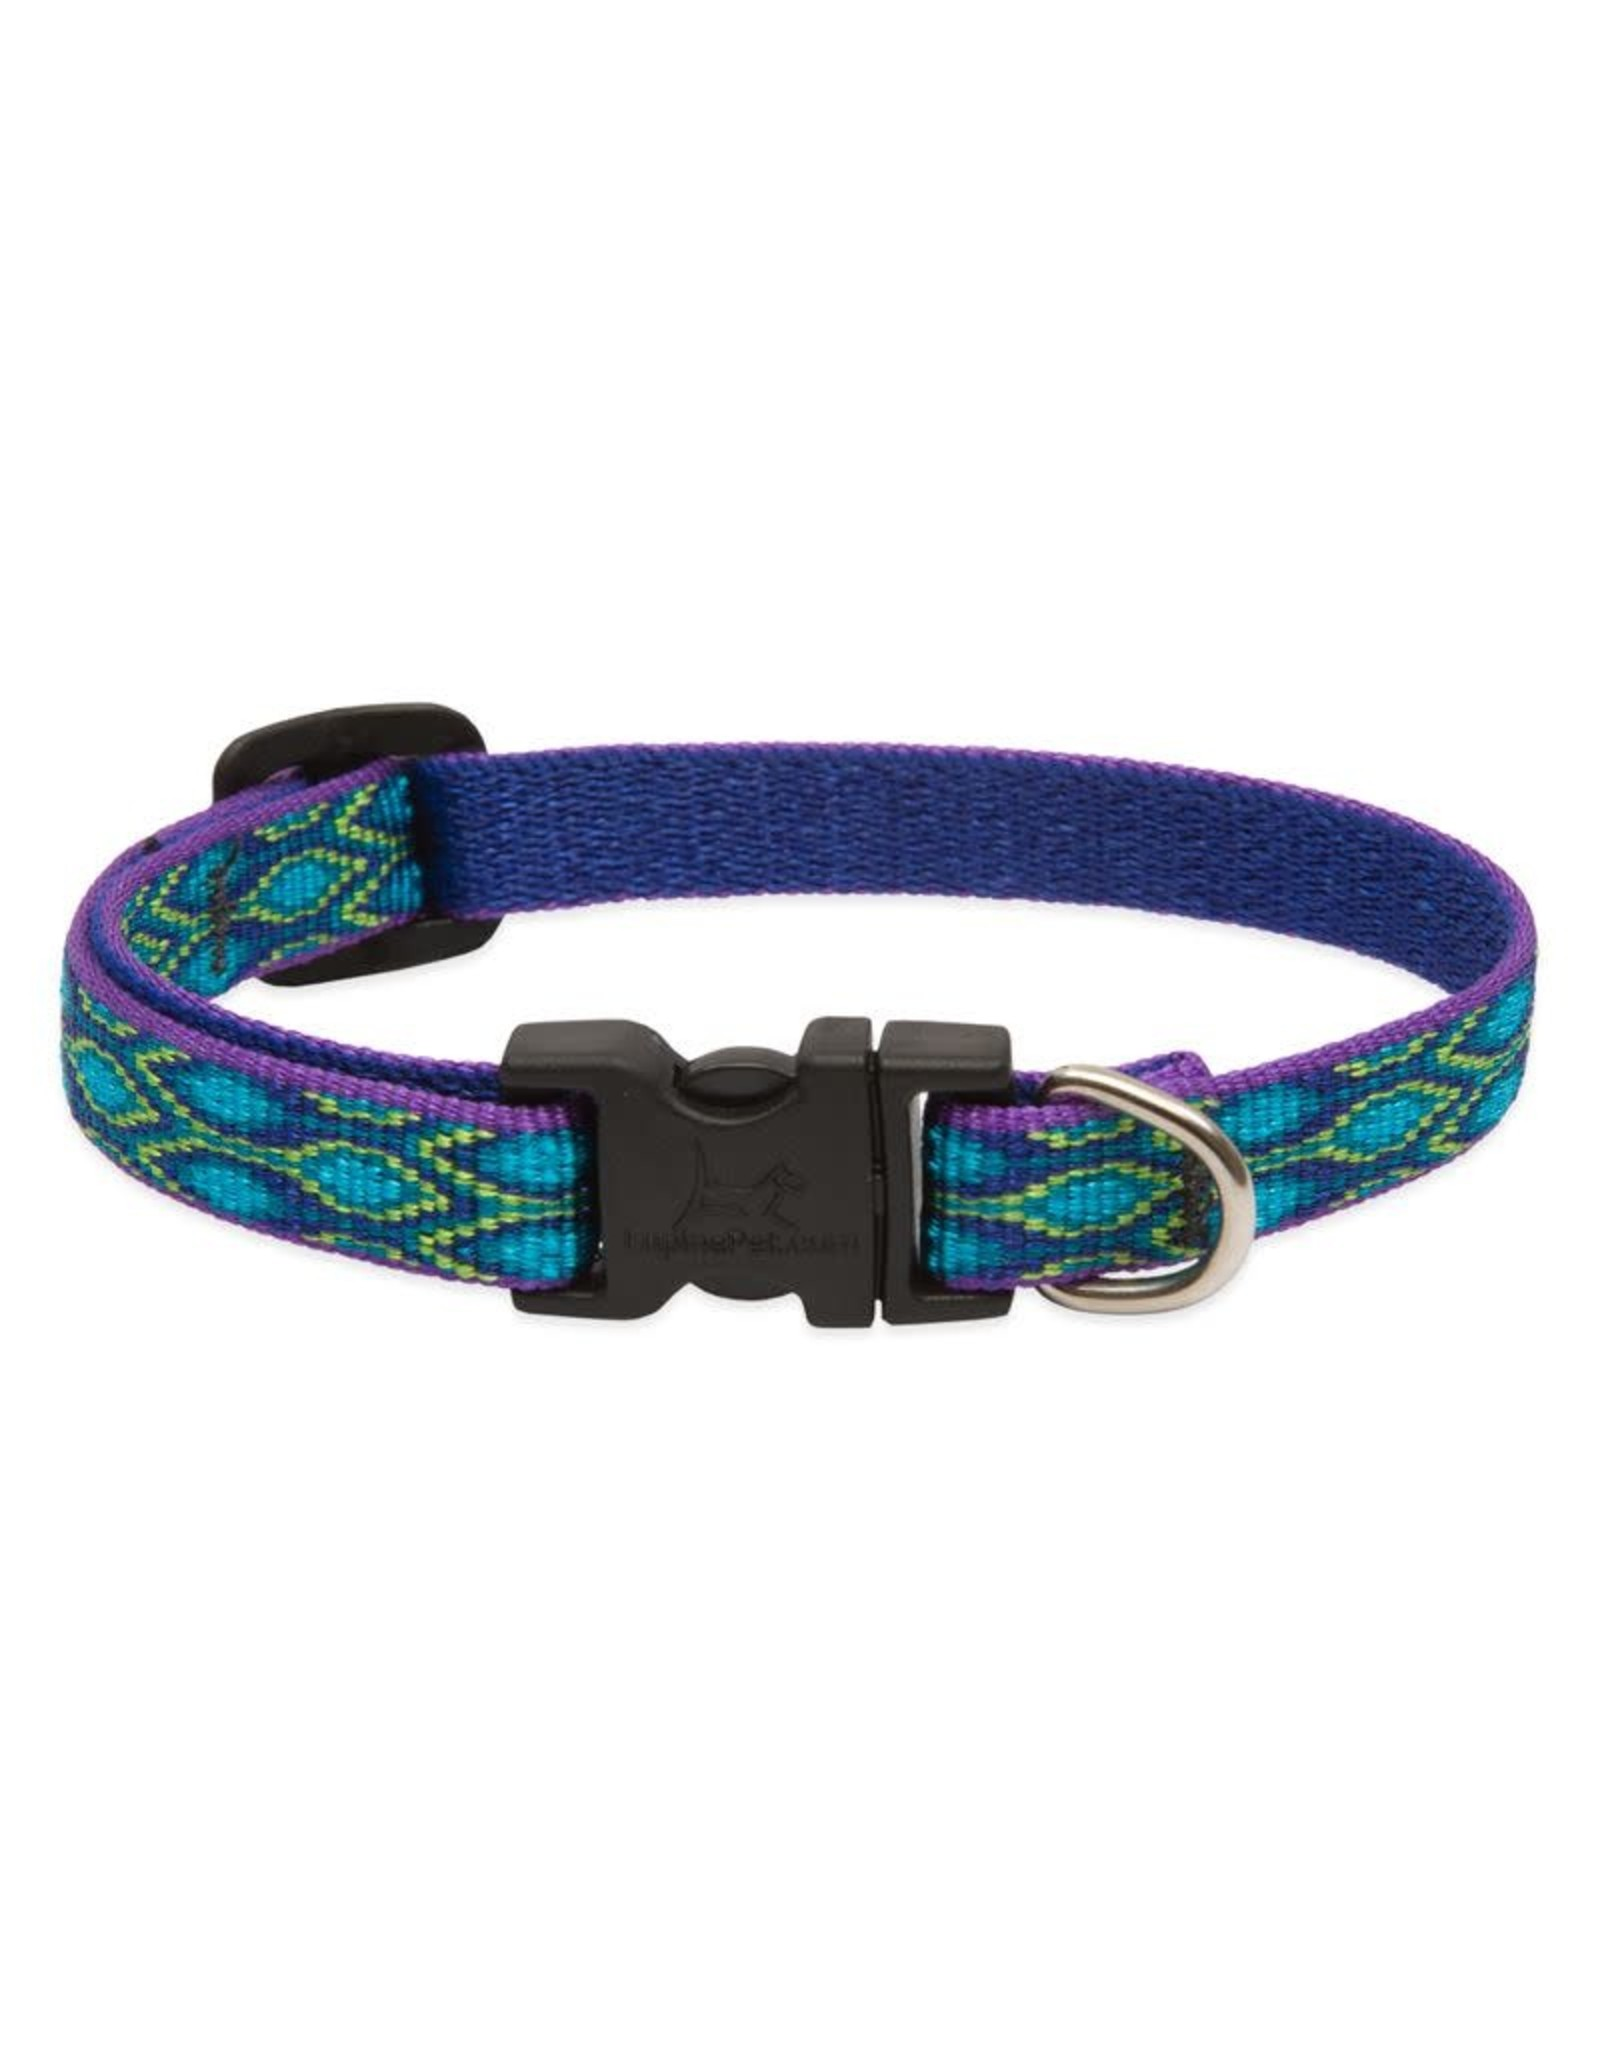 Lupine Lupine Rain Song Collar: 1 in wide, 16-28 inch